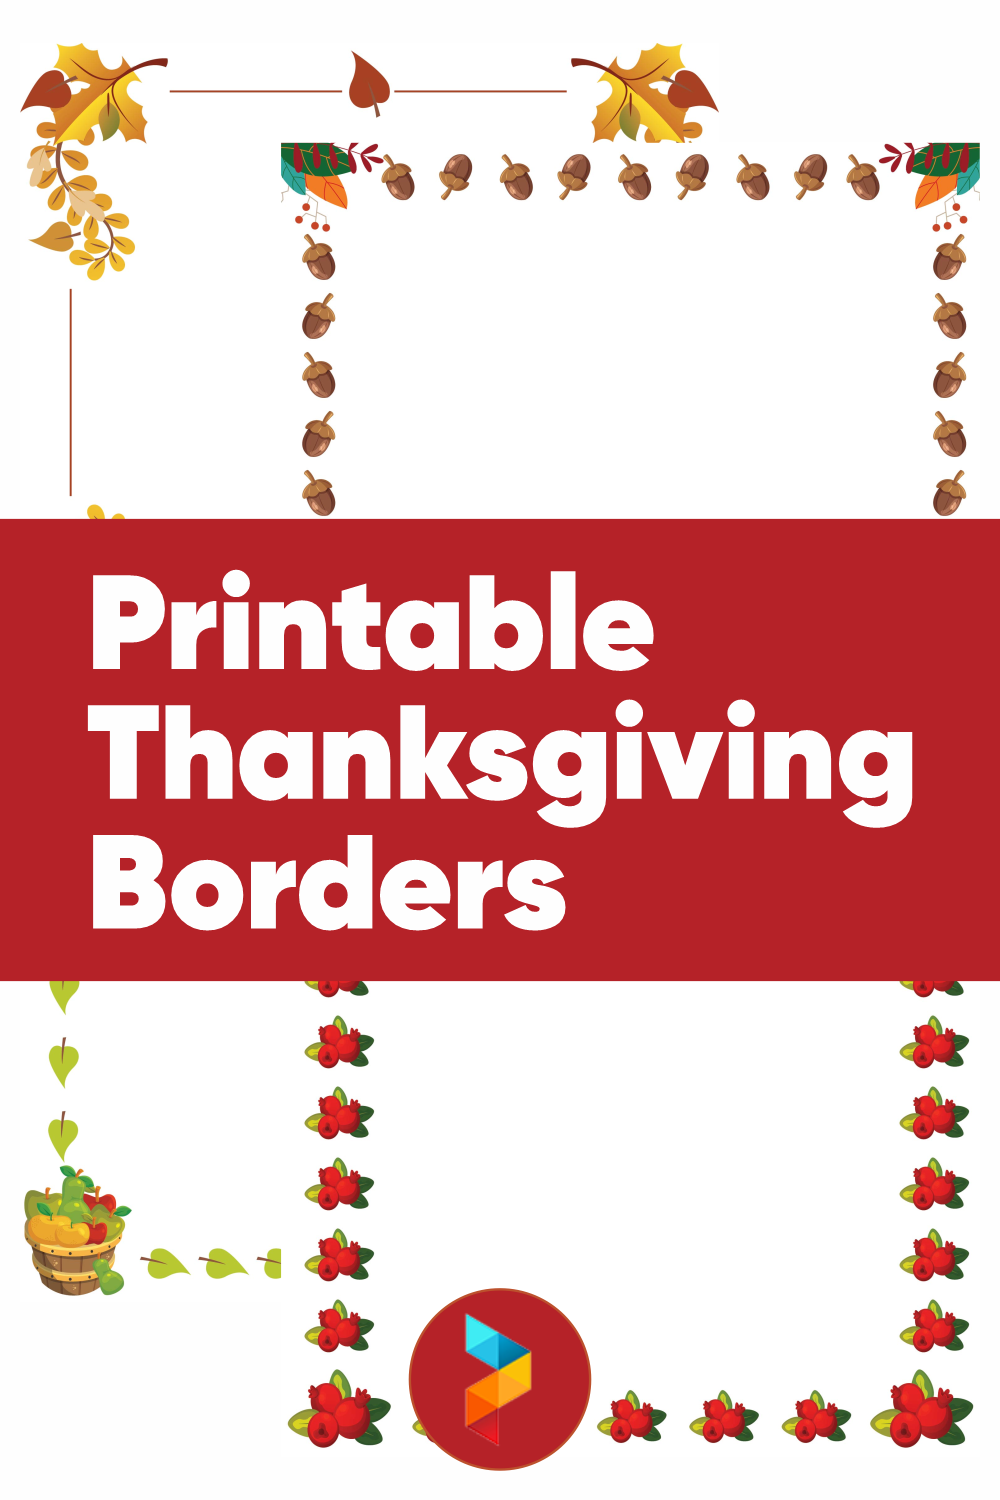 Printable Thanksgiving Borders